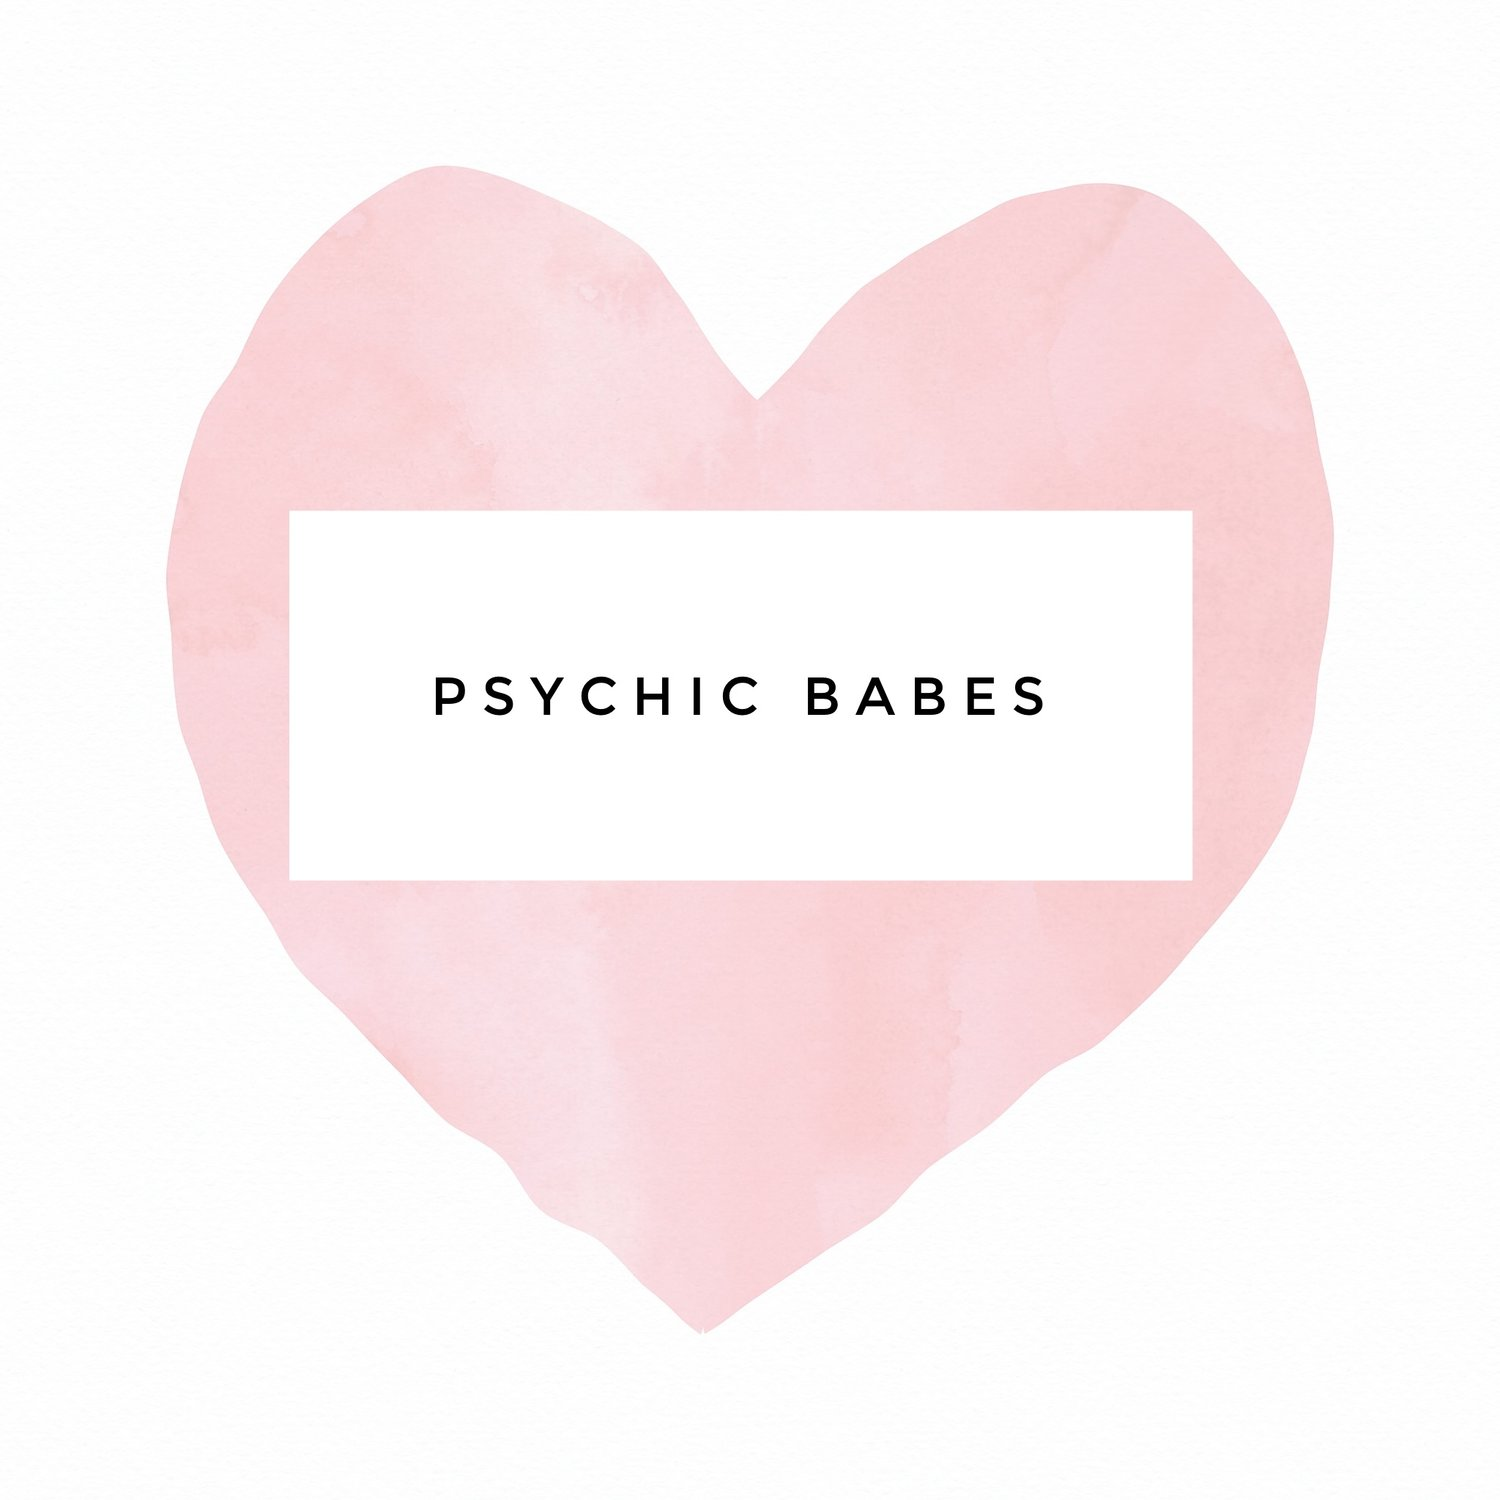 Psychic Babes